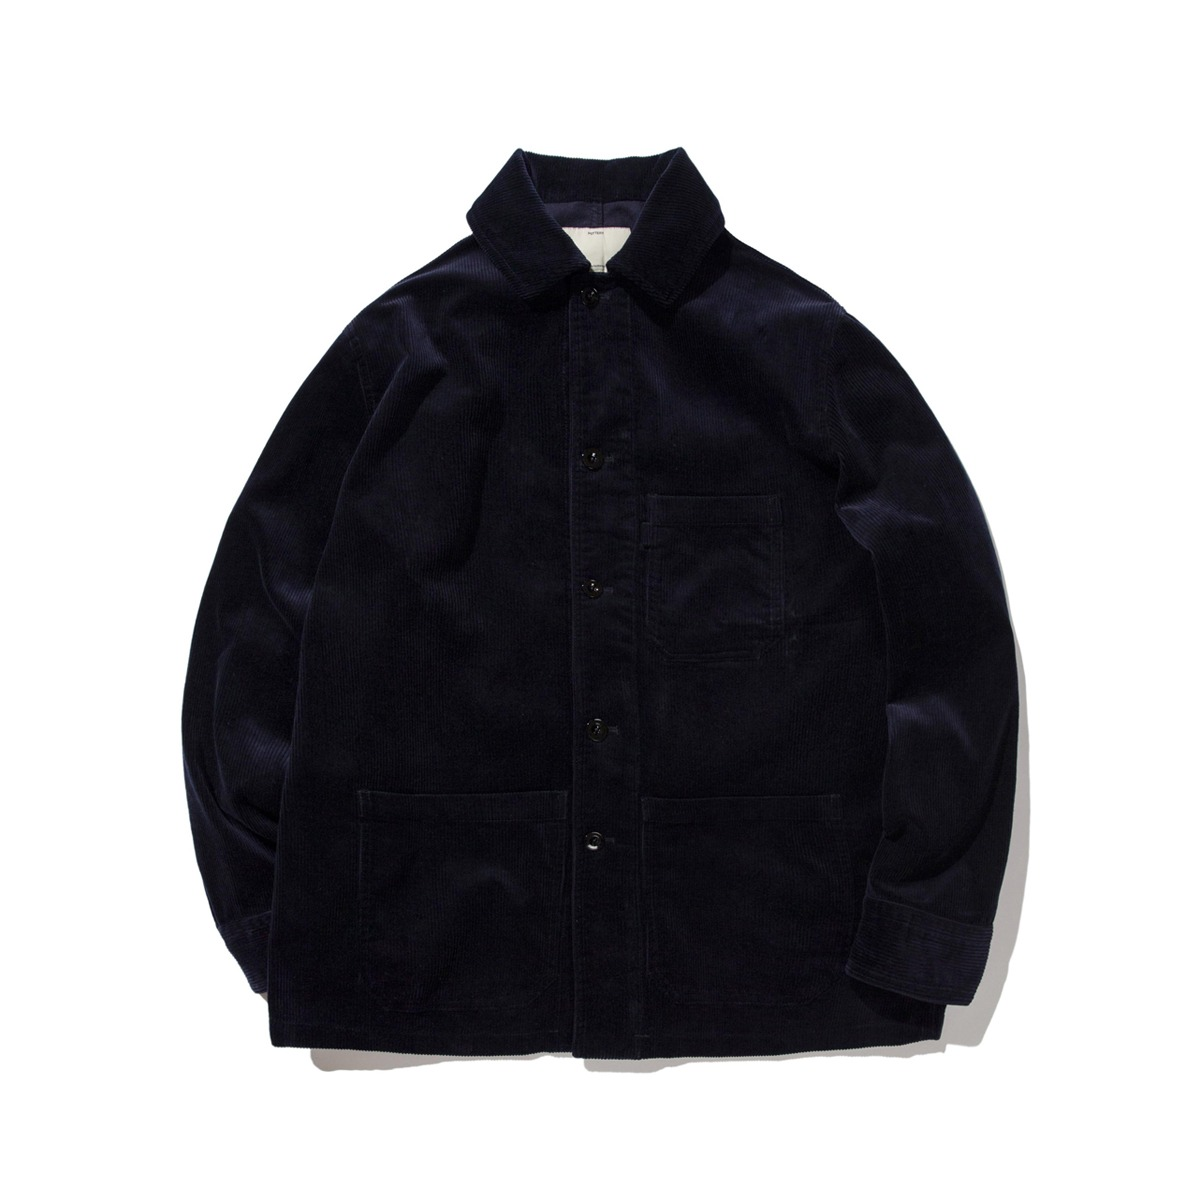 [POTTERY] WORK JACKET 'DARK NAVY'